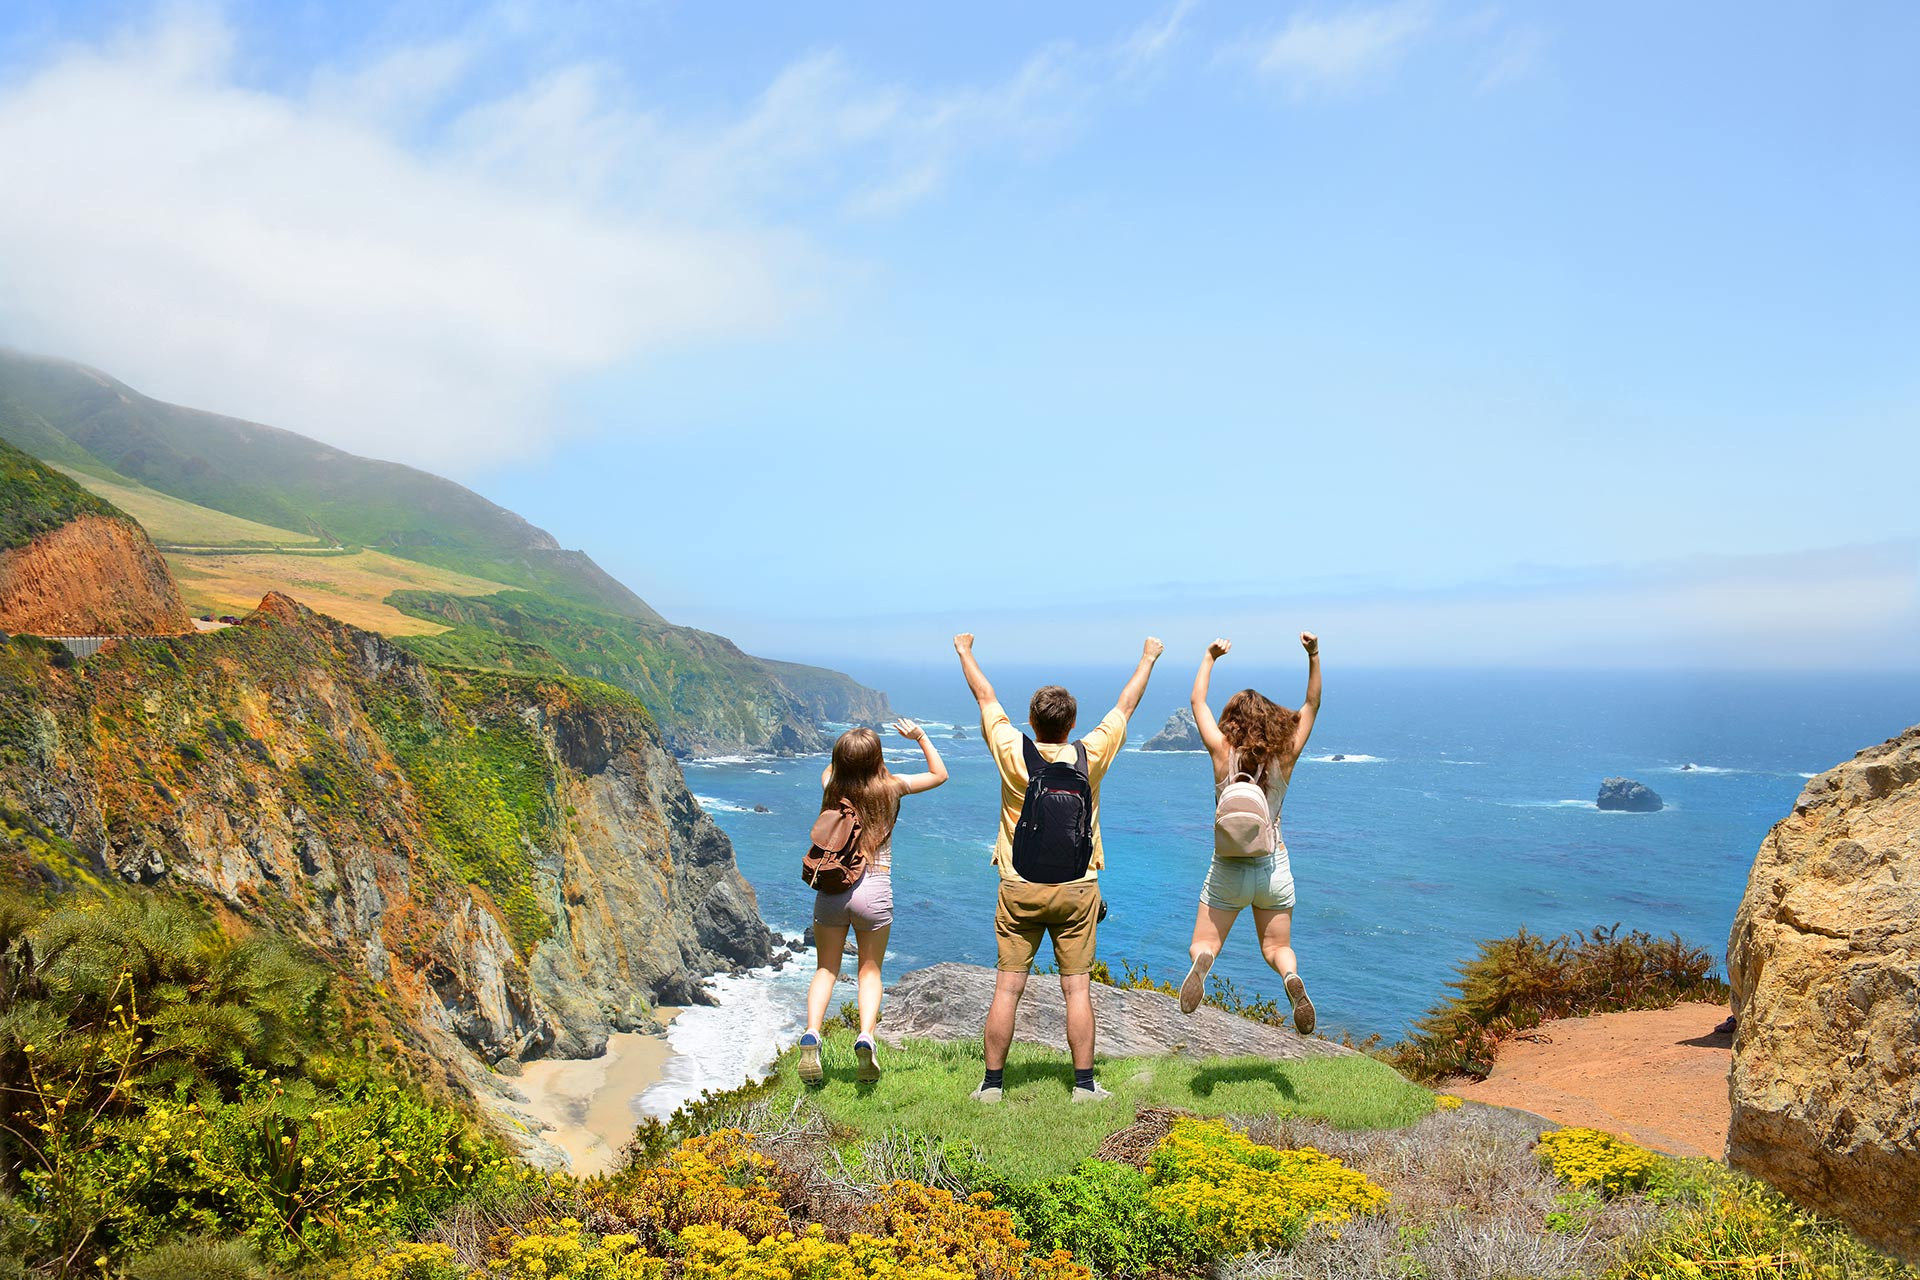 A group of kids enjoying the beautiful views of Big Sur, California